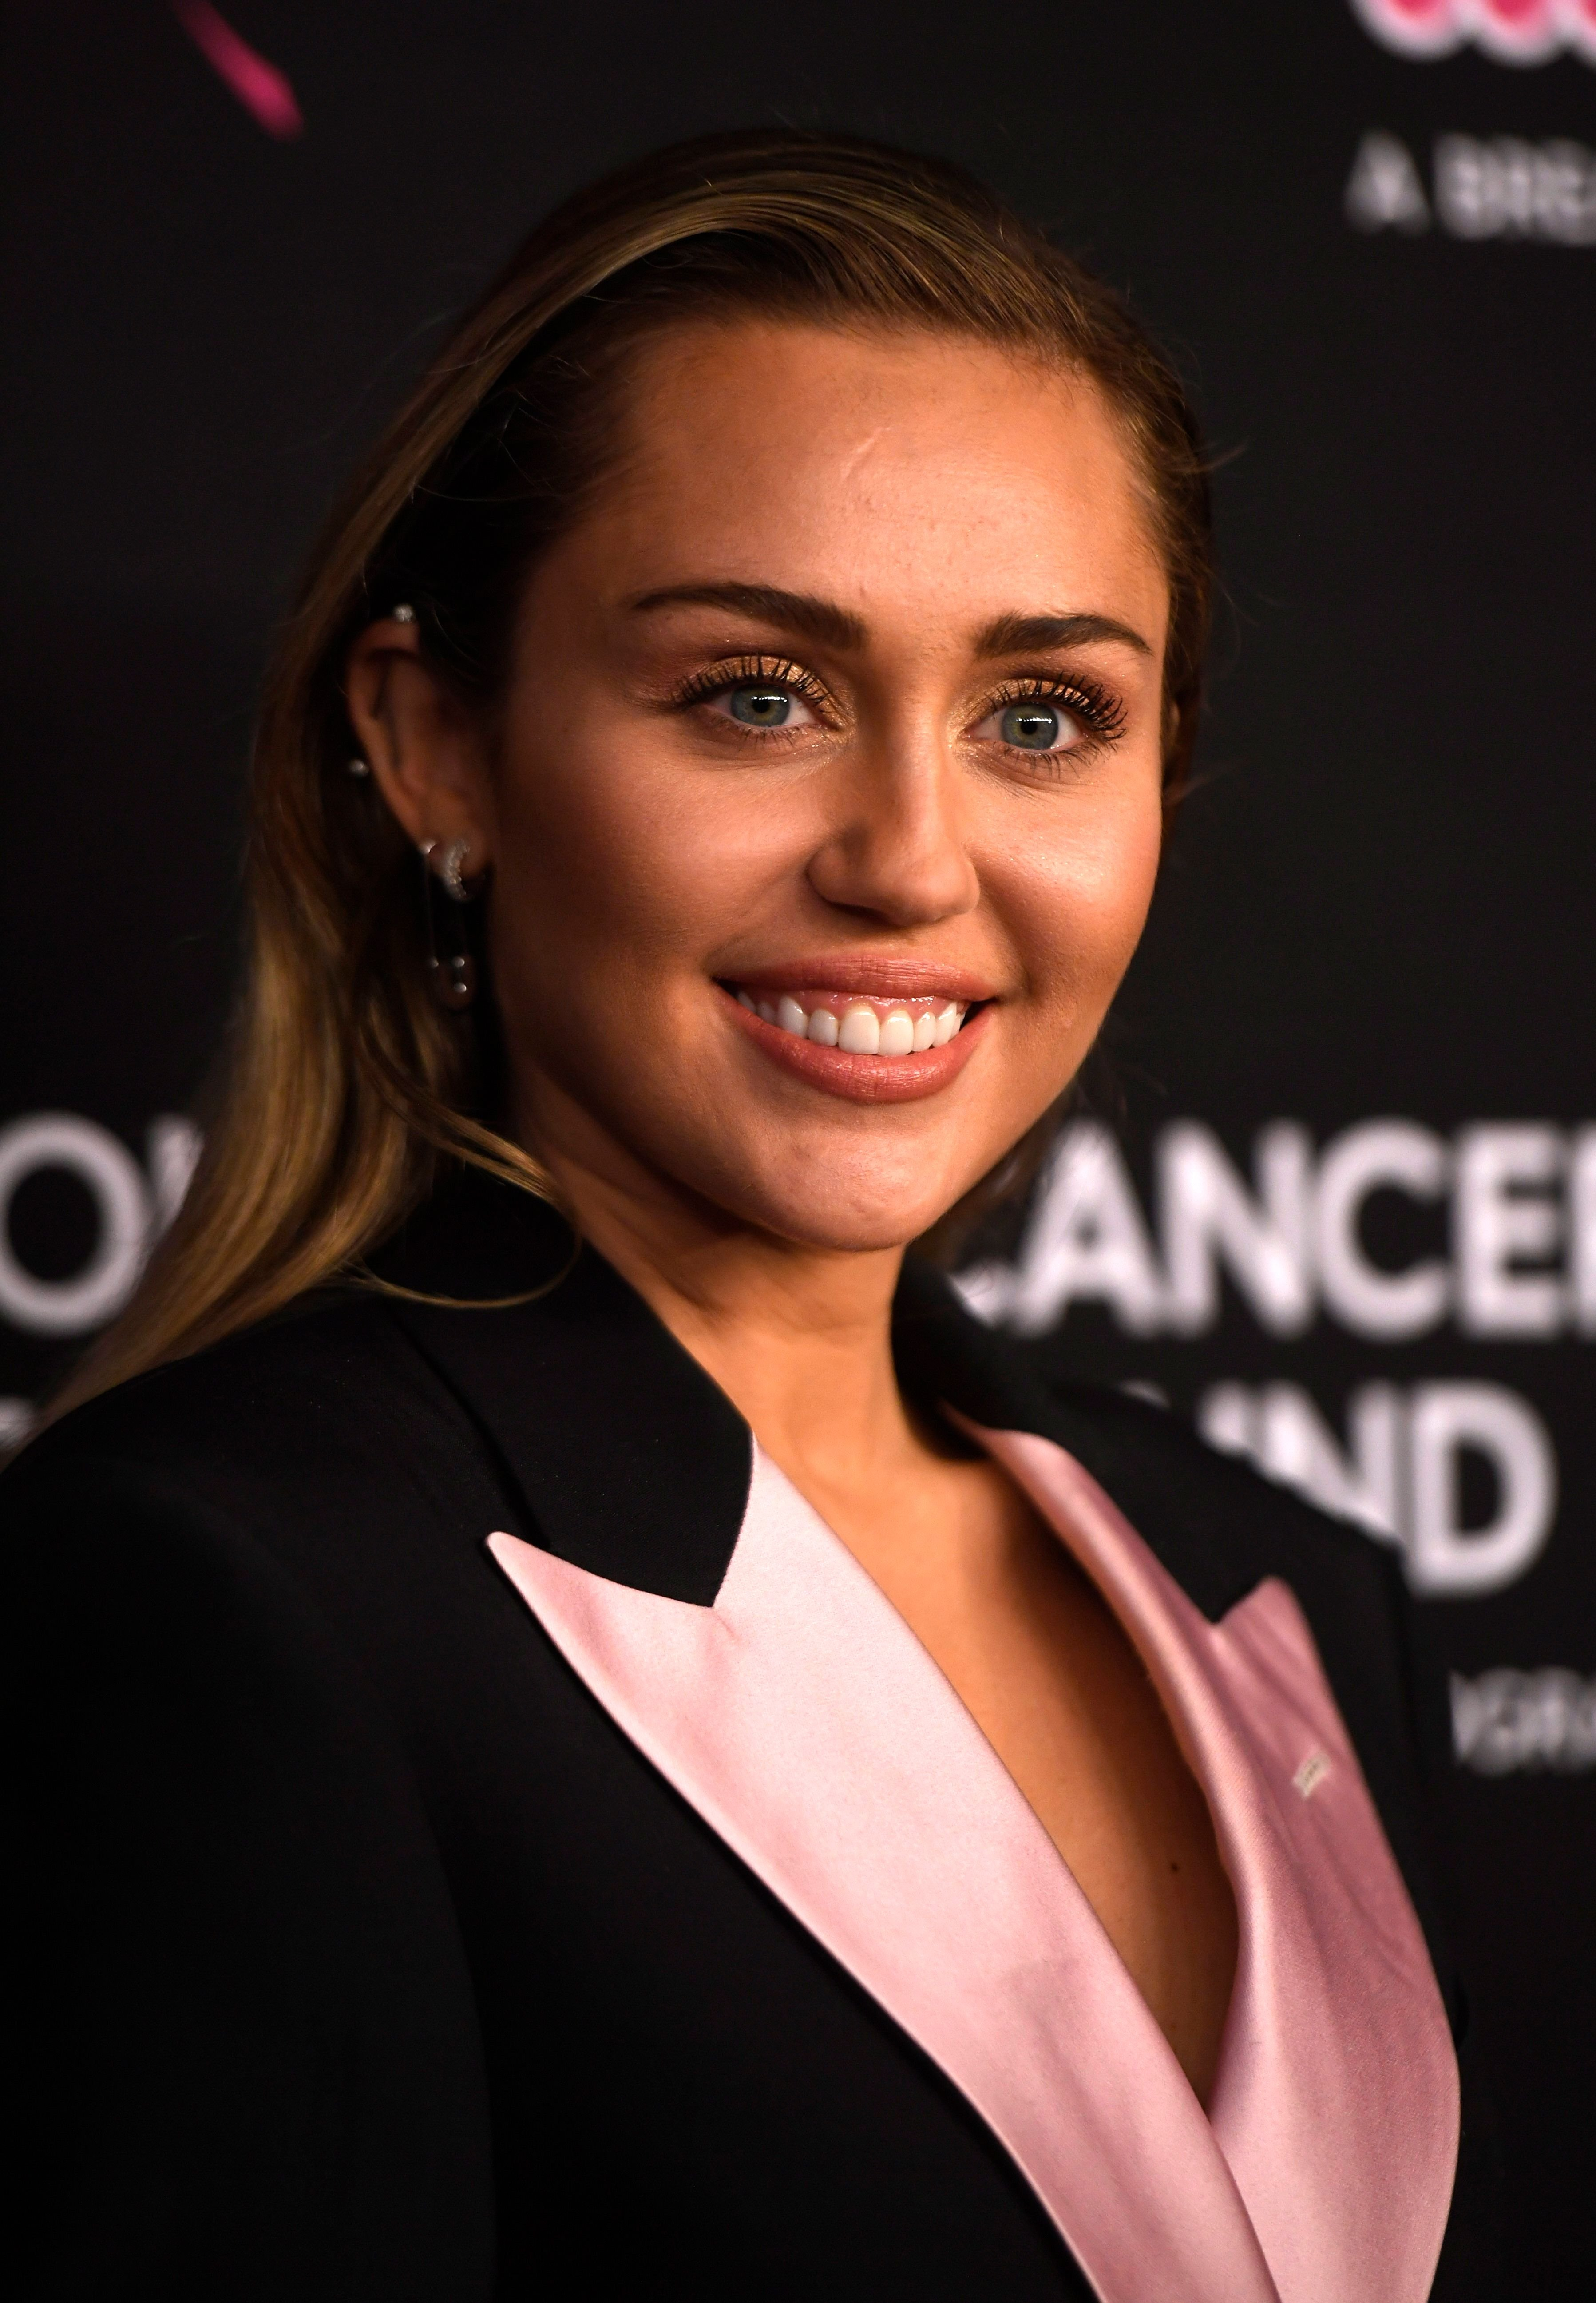 Miley Cyrus at The Women's Cancer Research Fund's An Unforgettable Evening Benefit Gala at the Beverly Wilshire Four Seasons Hotel on February 28, 2019 | Photo: Getty Images